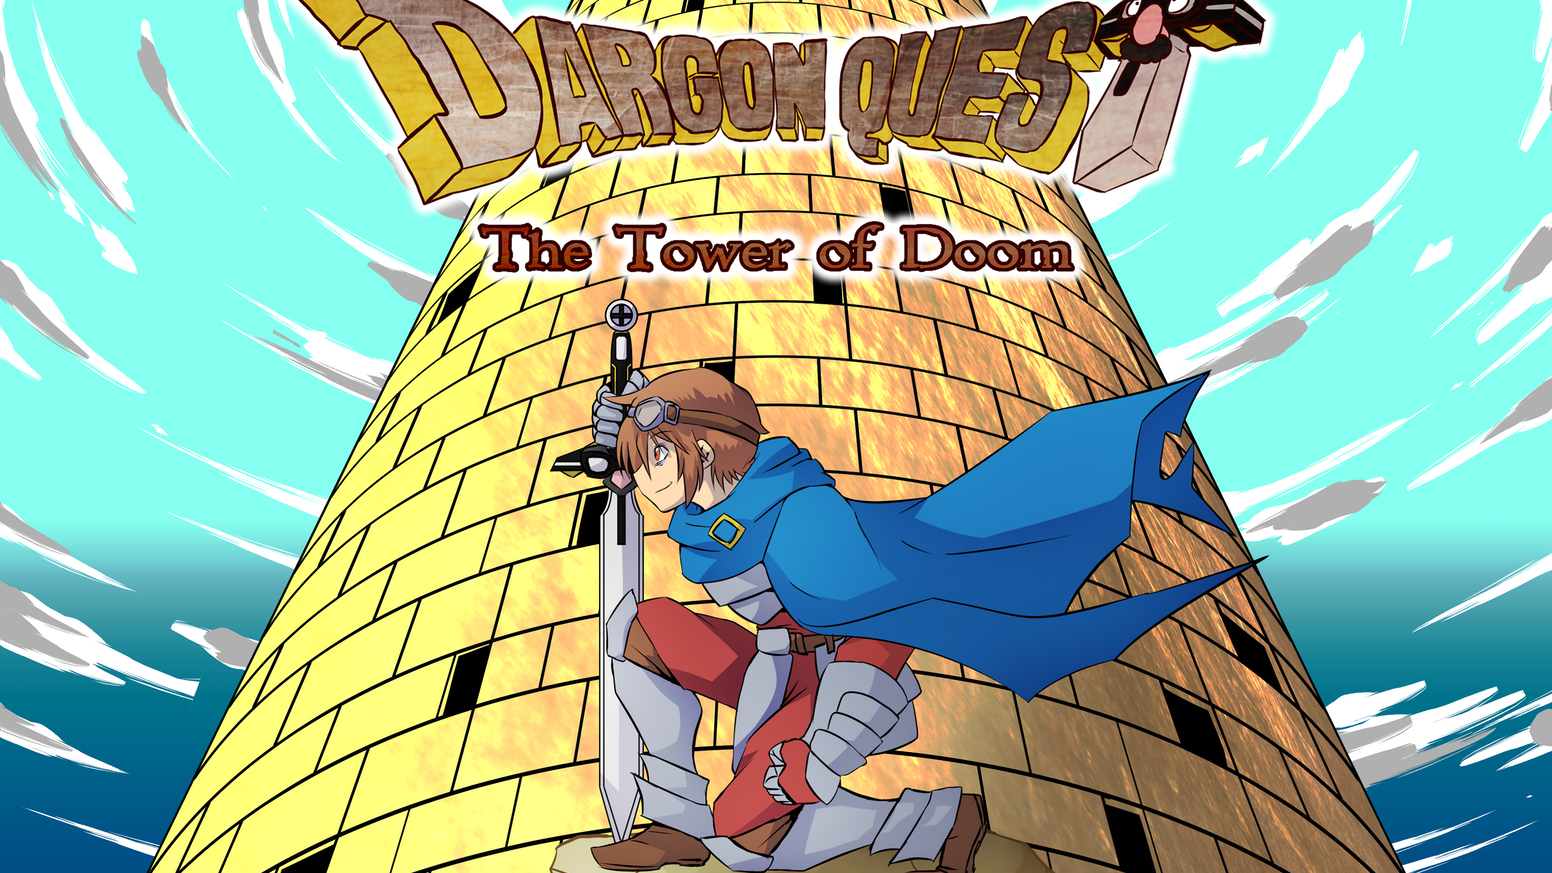 Dargon quest the tower of doom by carey martell kickstarter a homage to classic jrpgs like dragon quest lufia and final fantasy spinoff from the rpg fanatic youtube channel publicscrutiny Gallery